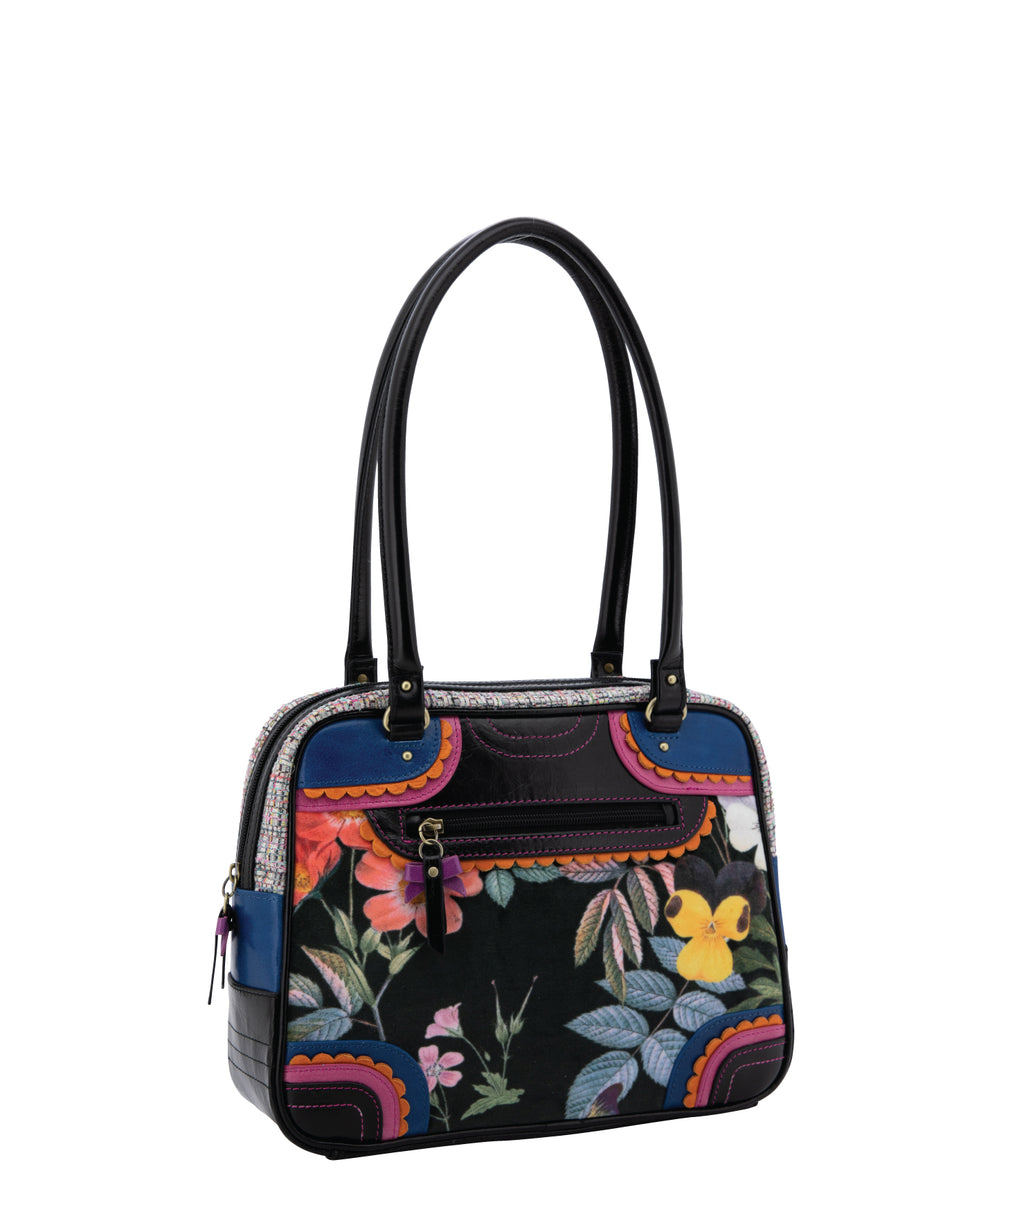 NINA Shoulder Bag - Fiesta Party